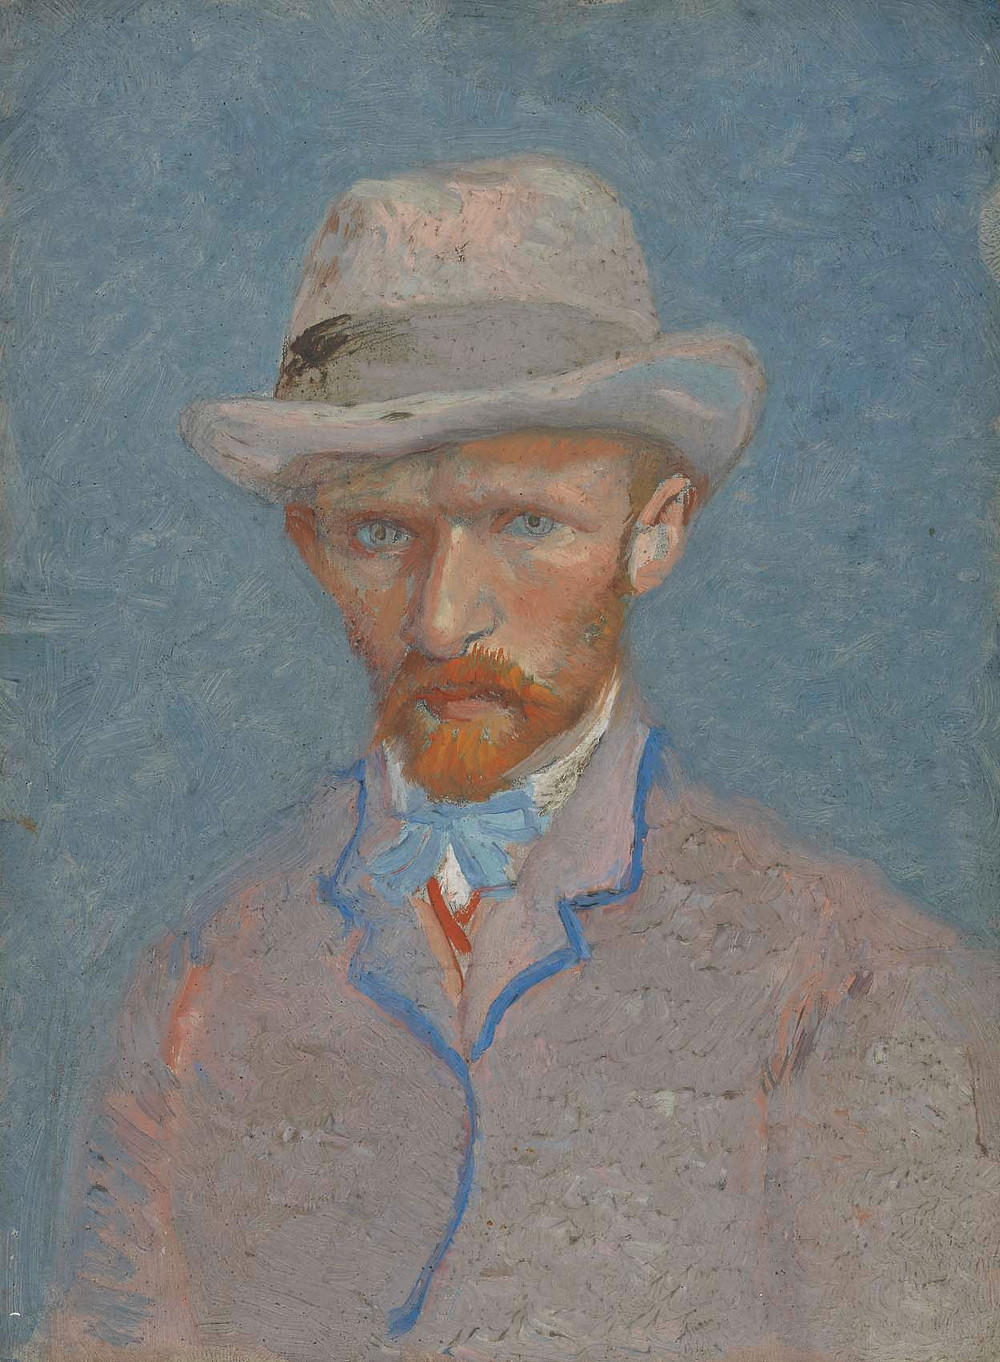 A portrait of Vincent's brother, Theo